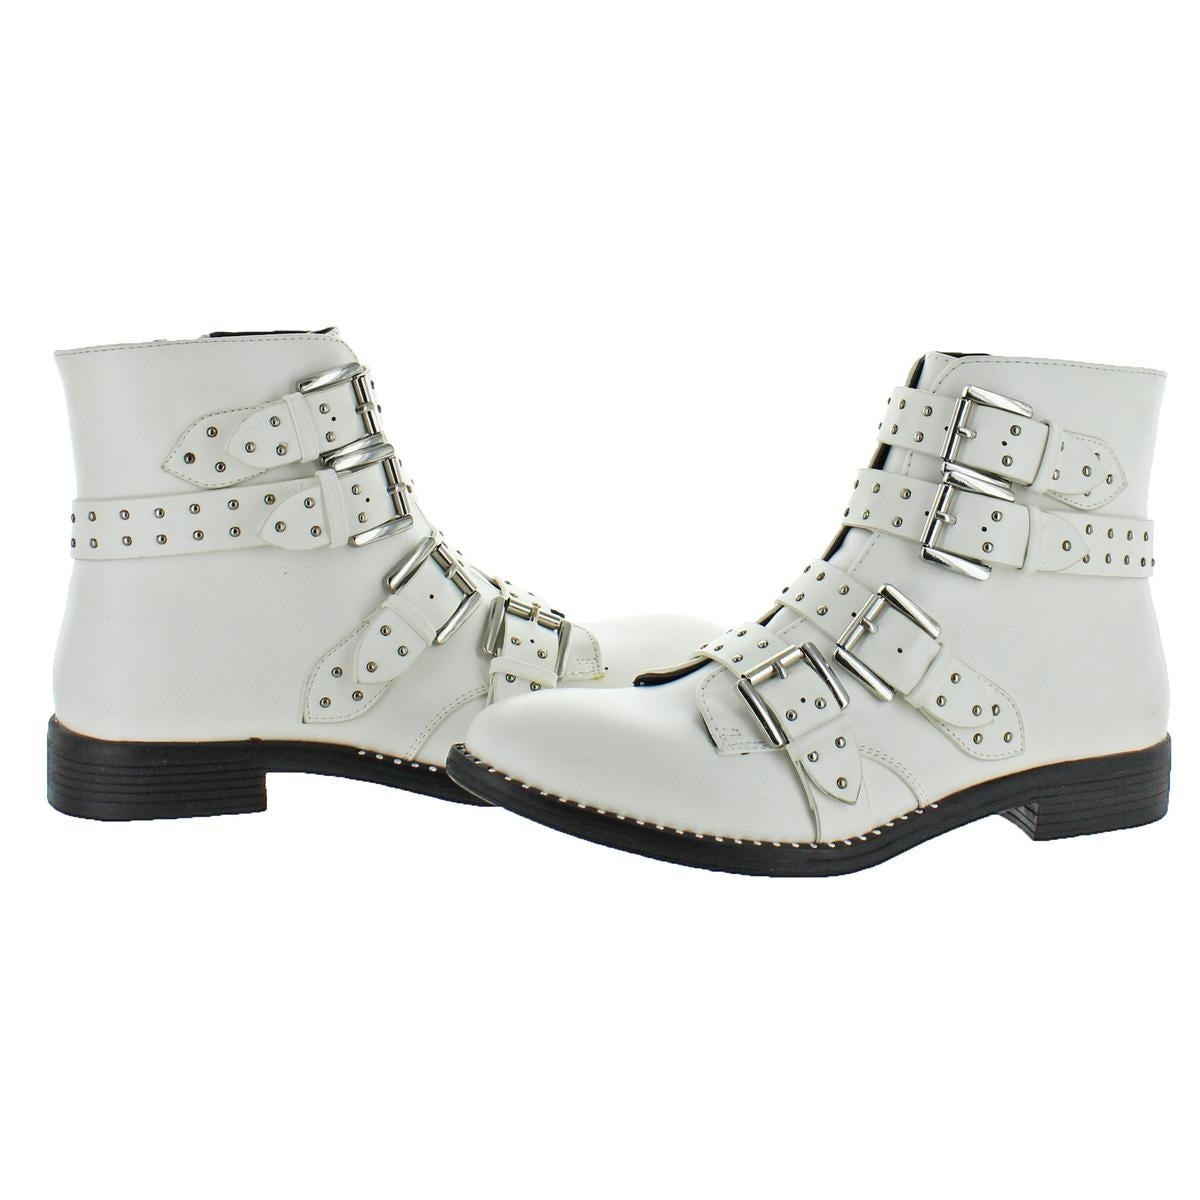 662edbe7468 Steve Madden Womens Reena Ankle Boots Studded Bootie